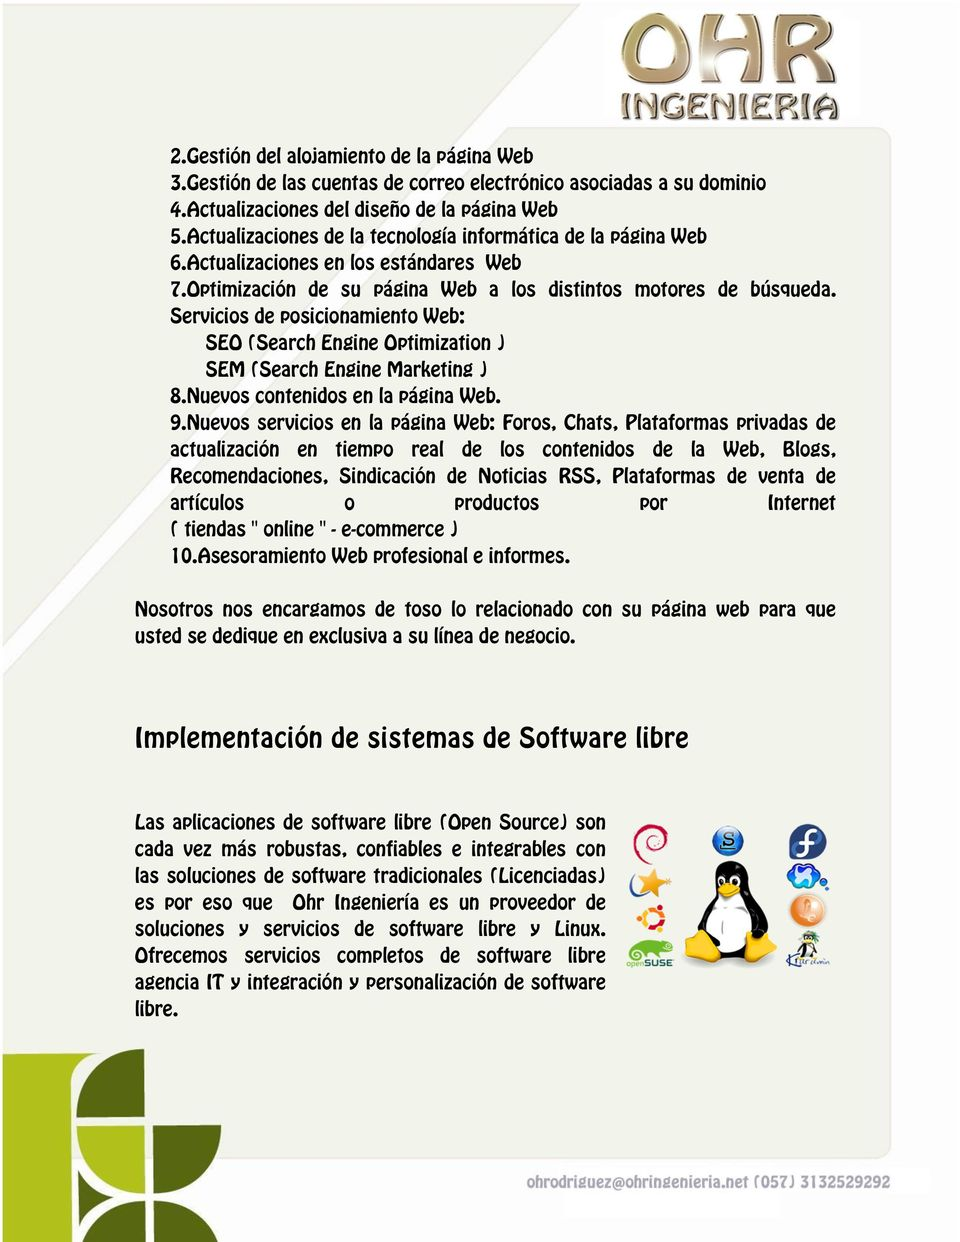 Servicios de posicionamiento Web: SEO (Search Engine Optimization ) SEM (Search Engine Marketing ) 8.Nuevos contenidos en la página Web. 9.